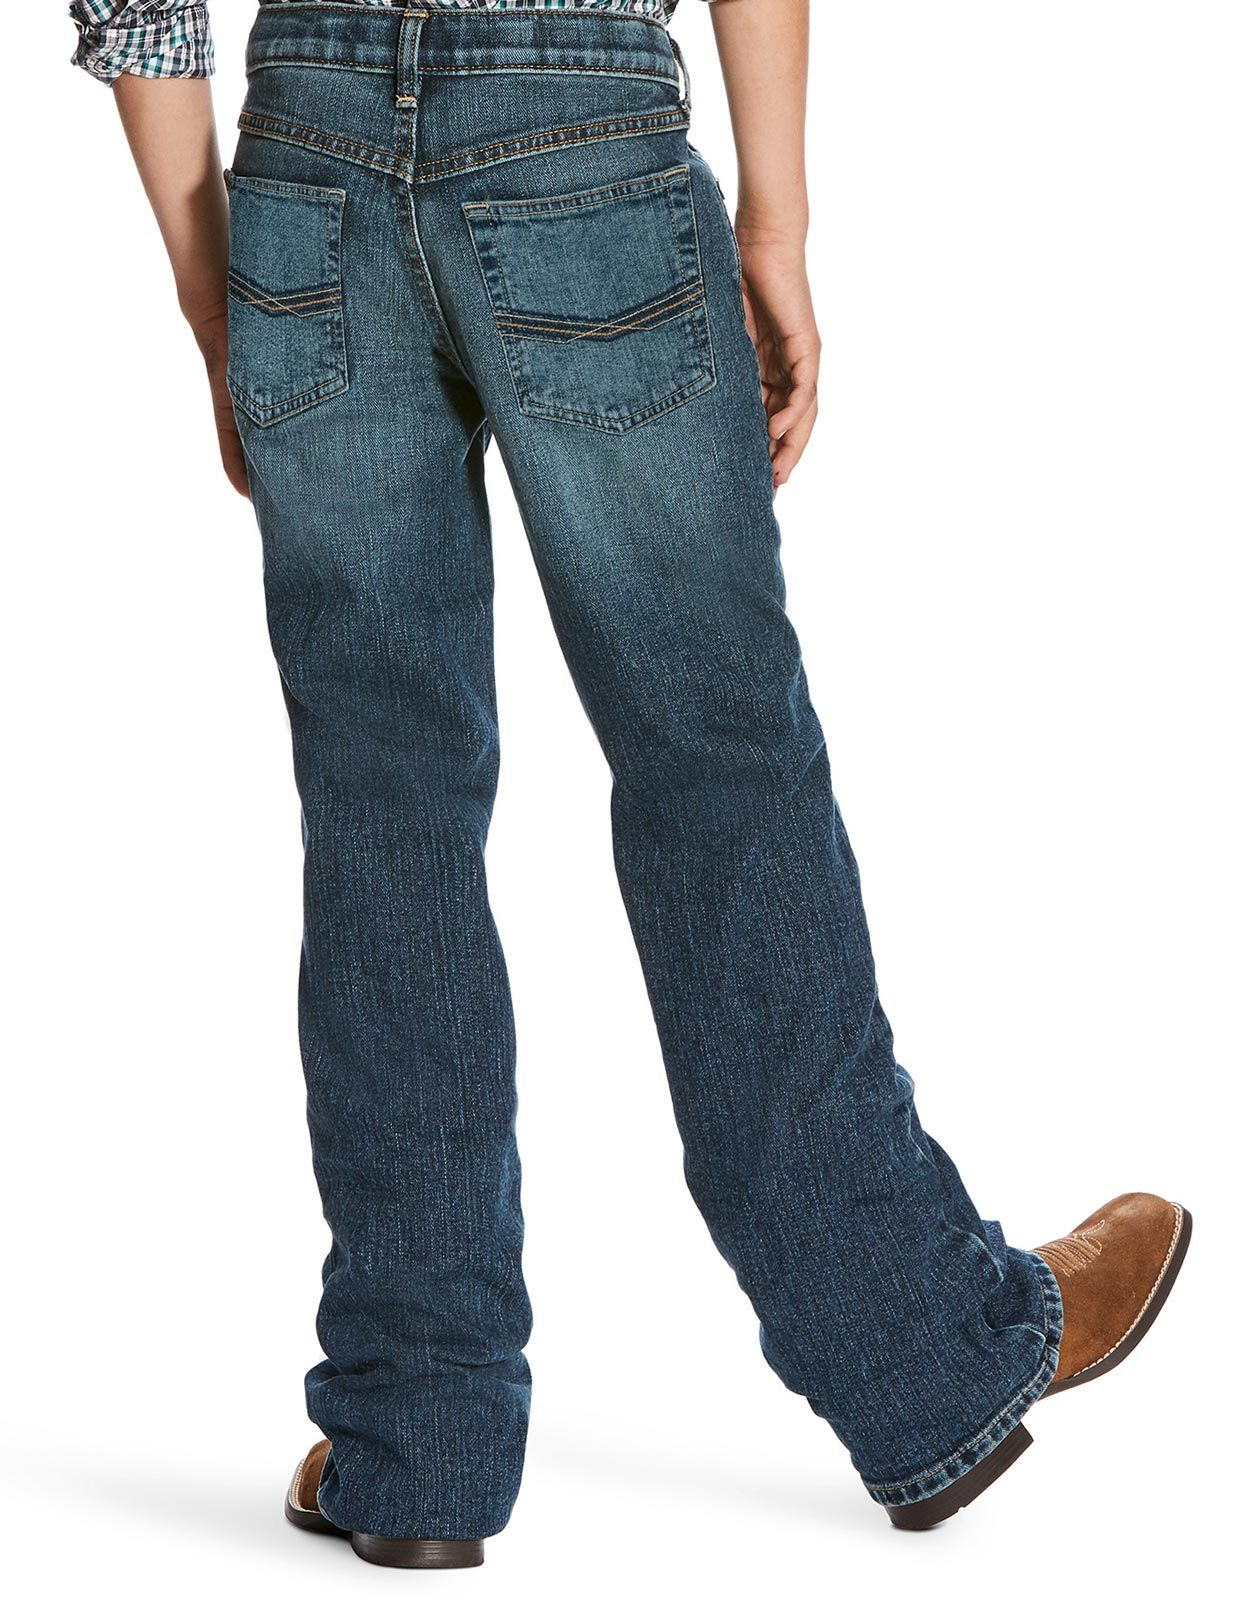 Ariat Boy's B4 Stretch Low Rise Relaxed Fit Boot Cut Jeans - Kilroy